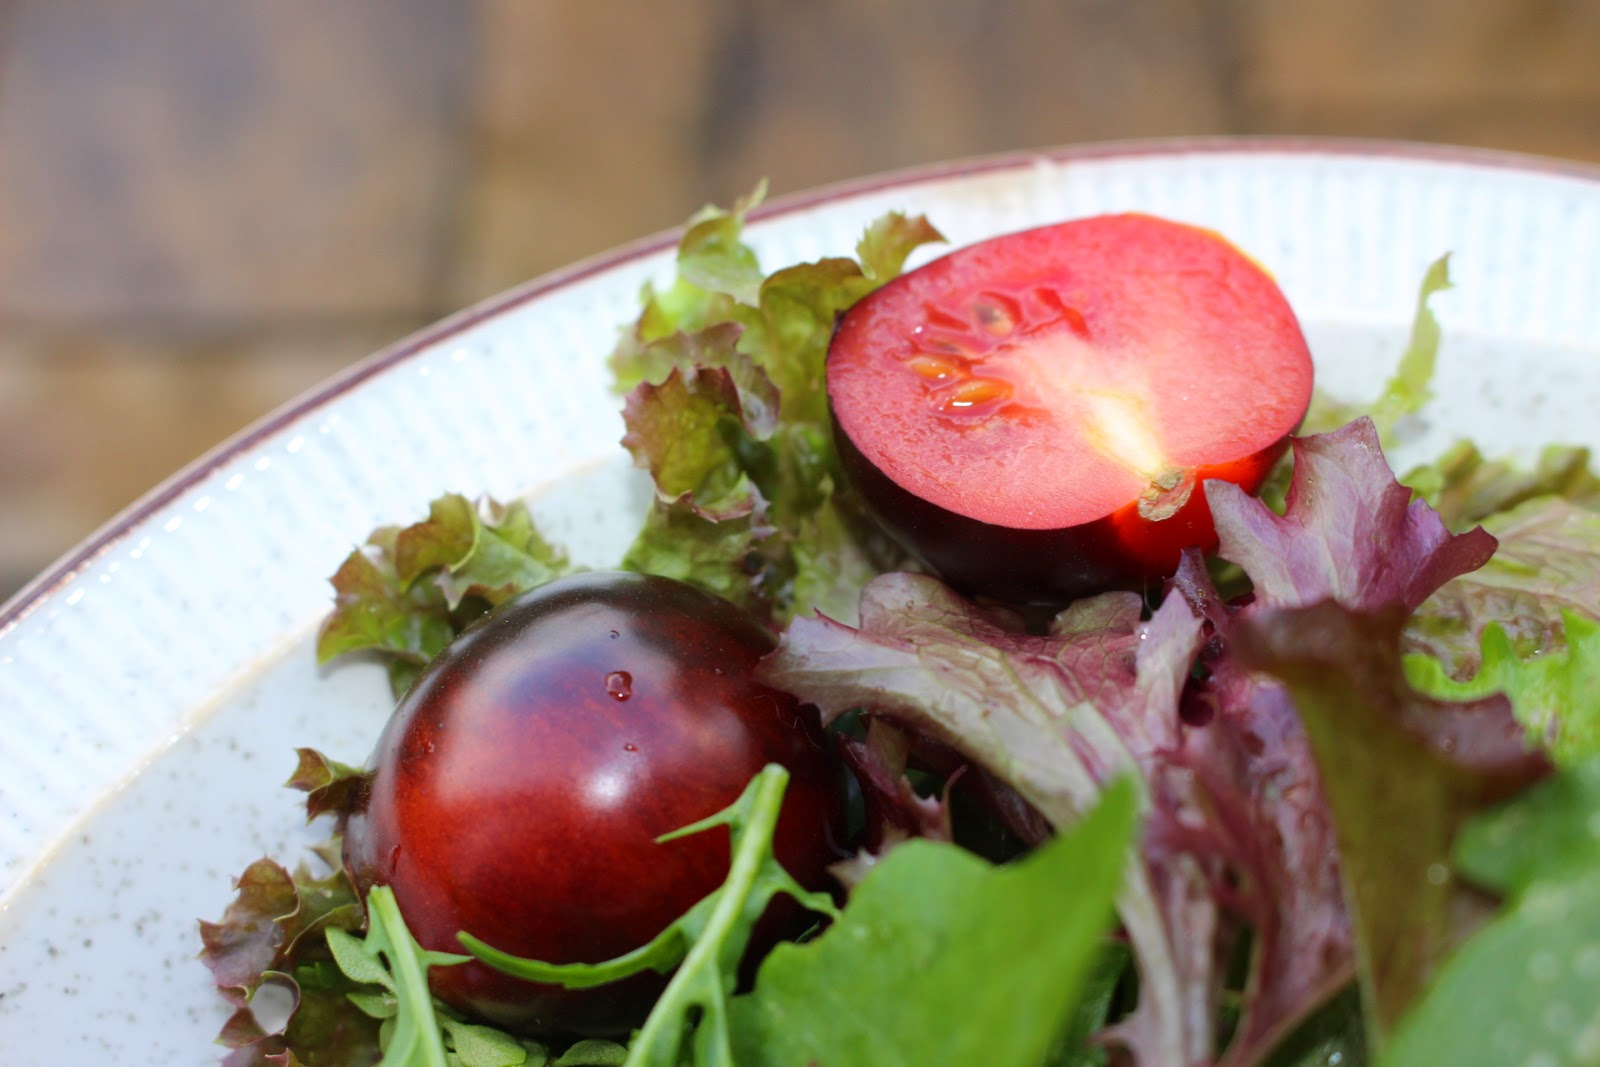 Photo of a tomato and salad leaves on a plate